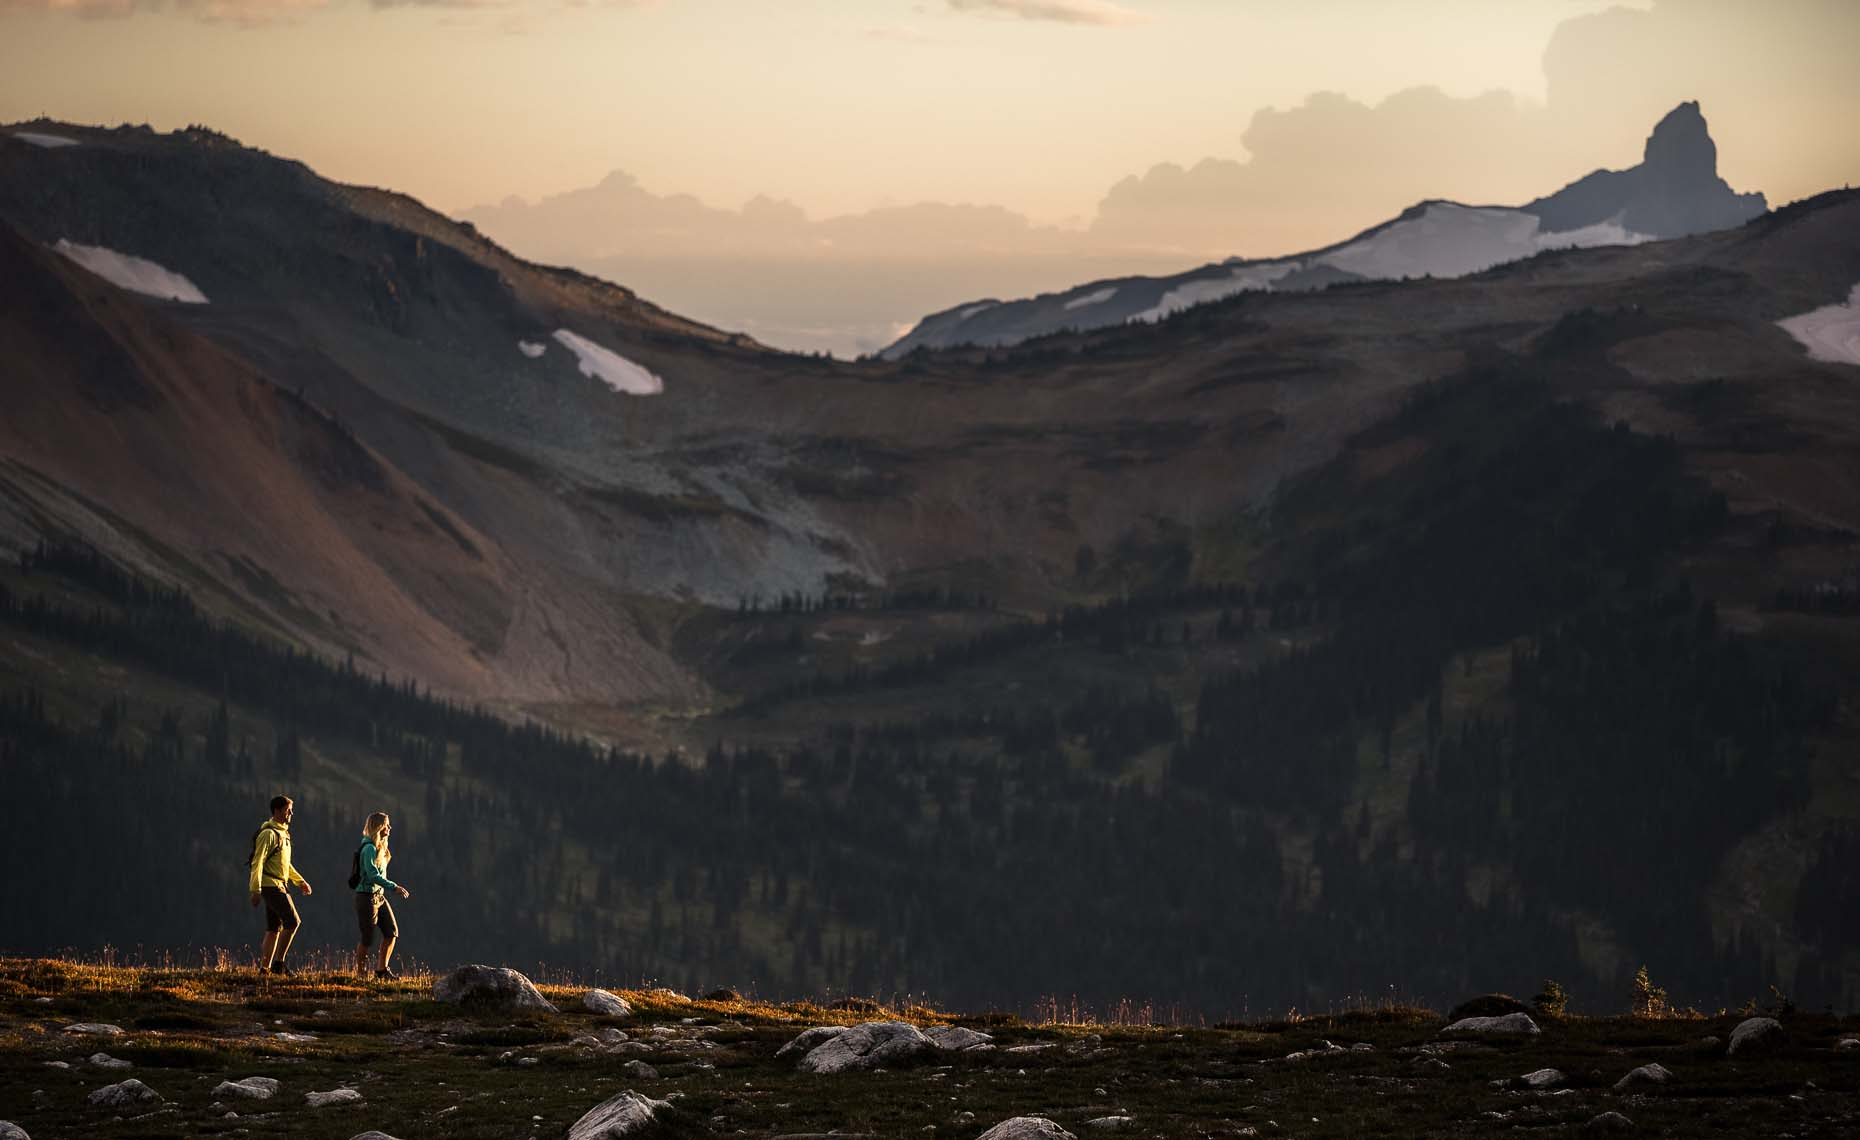 Outdoor lifestyle hiking photography in nature, in Whistler, BC